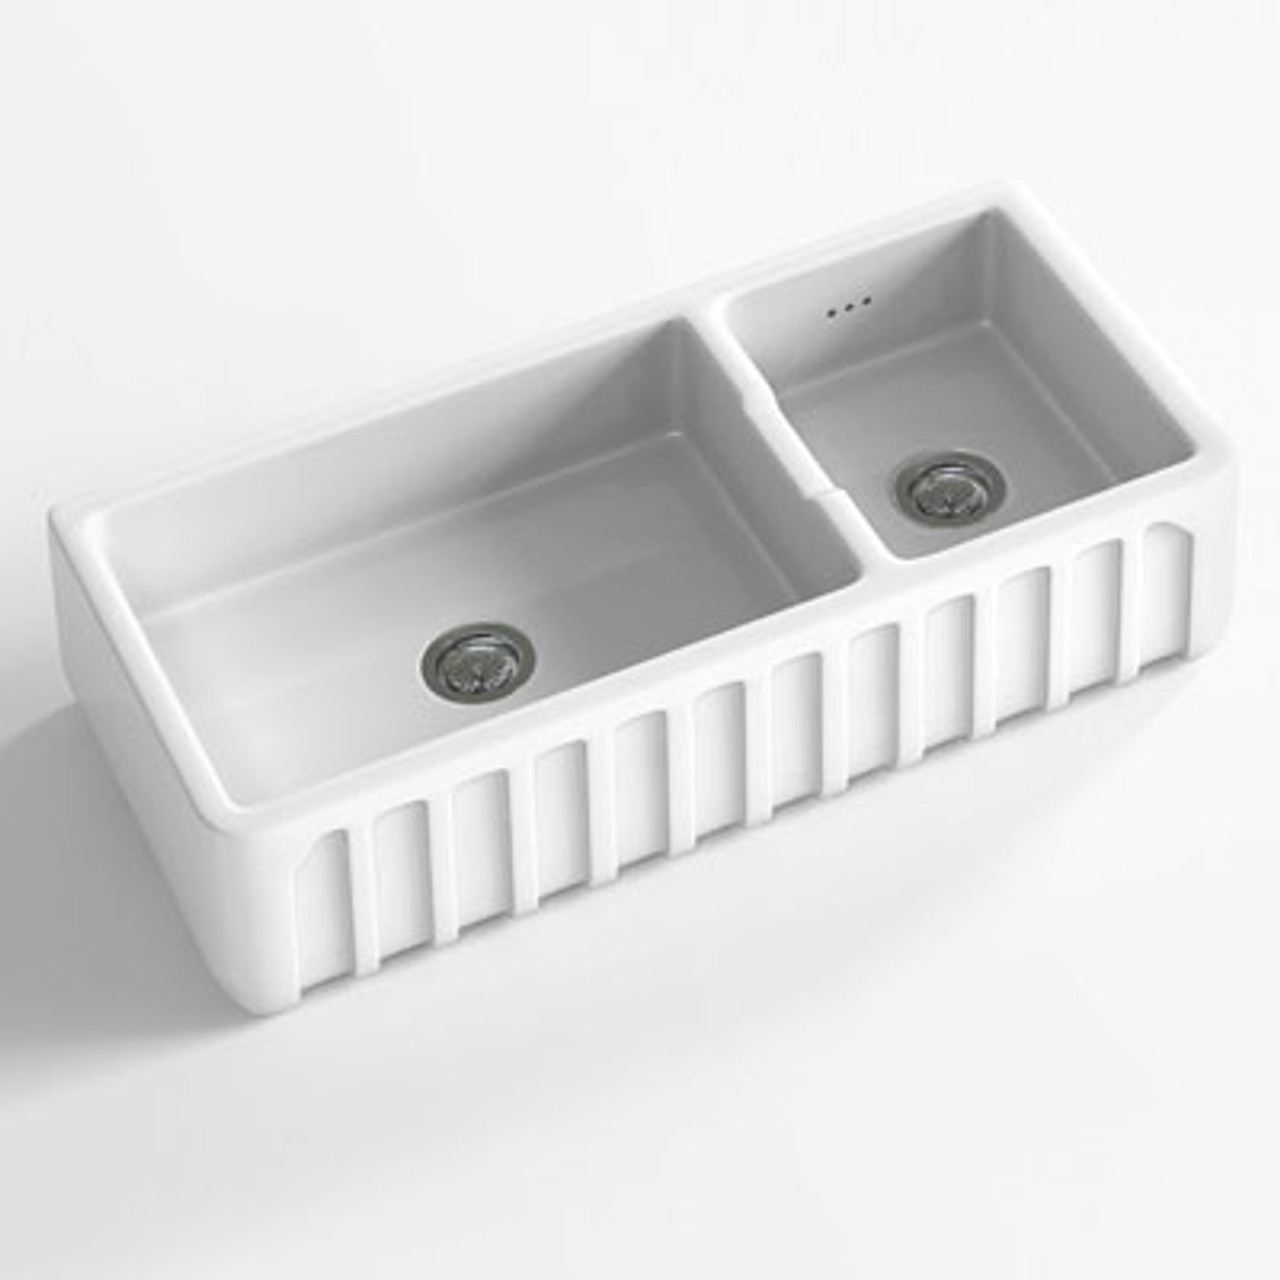 Chambord Louis III White Ceramic Kitchen Sink - Sinks